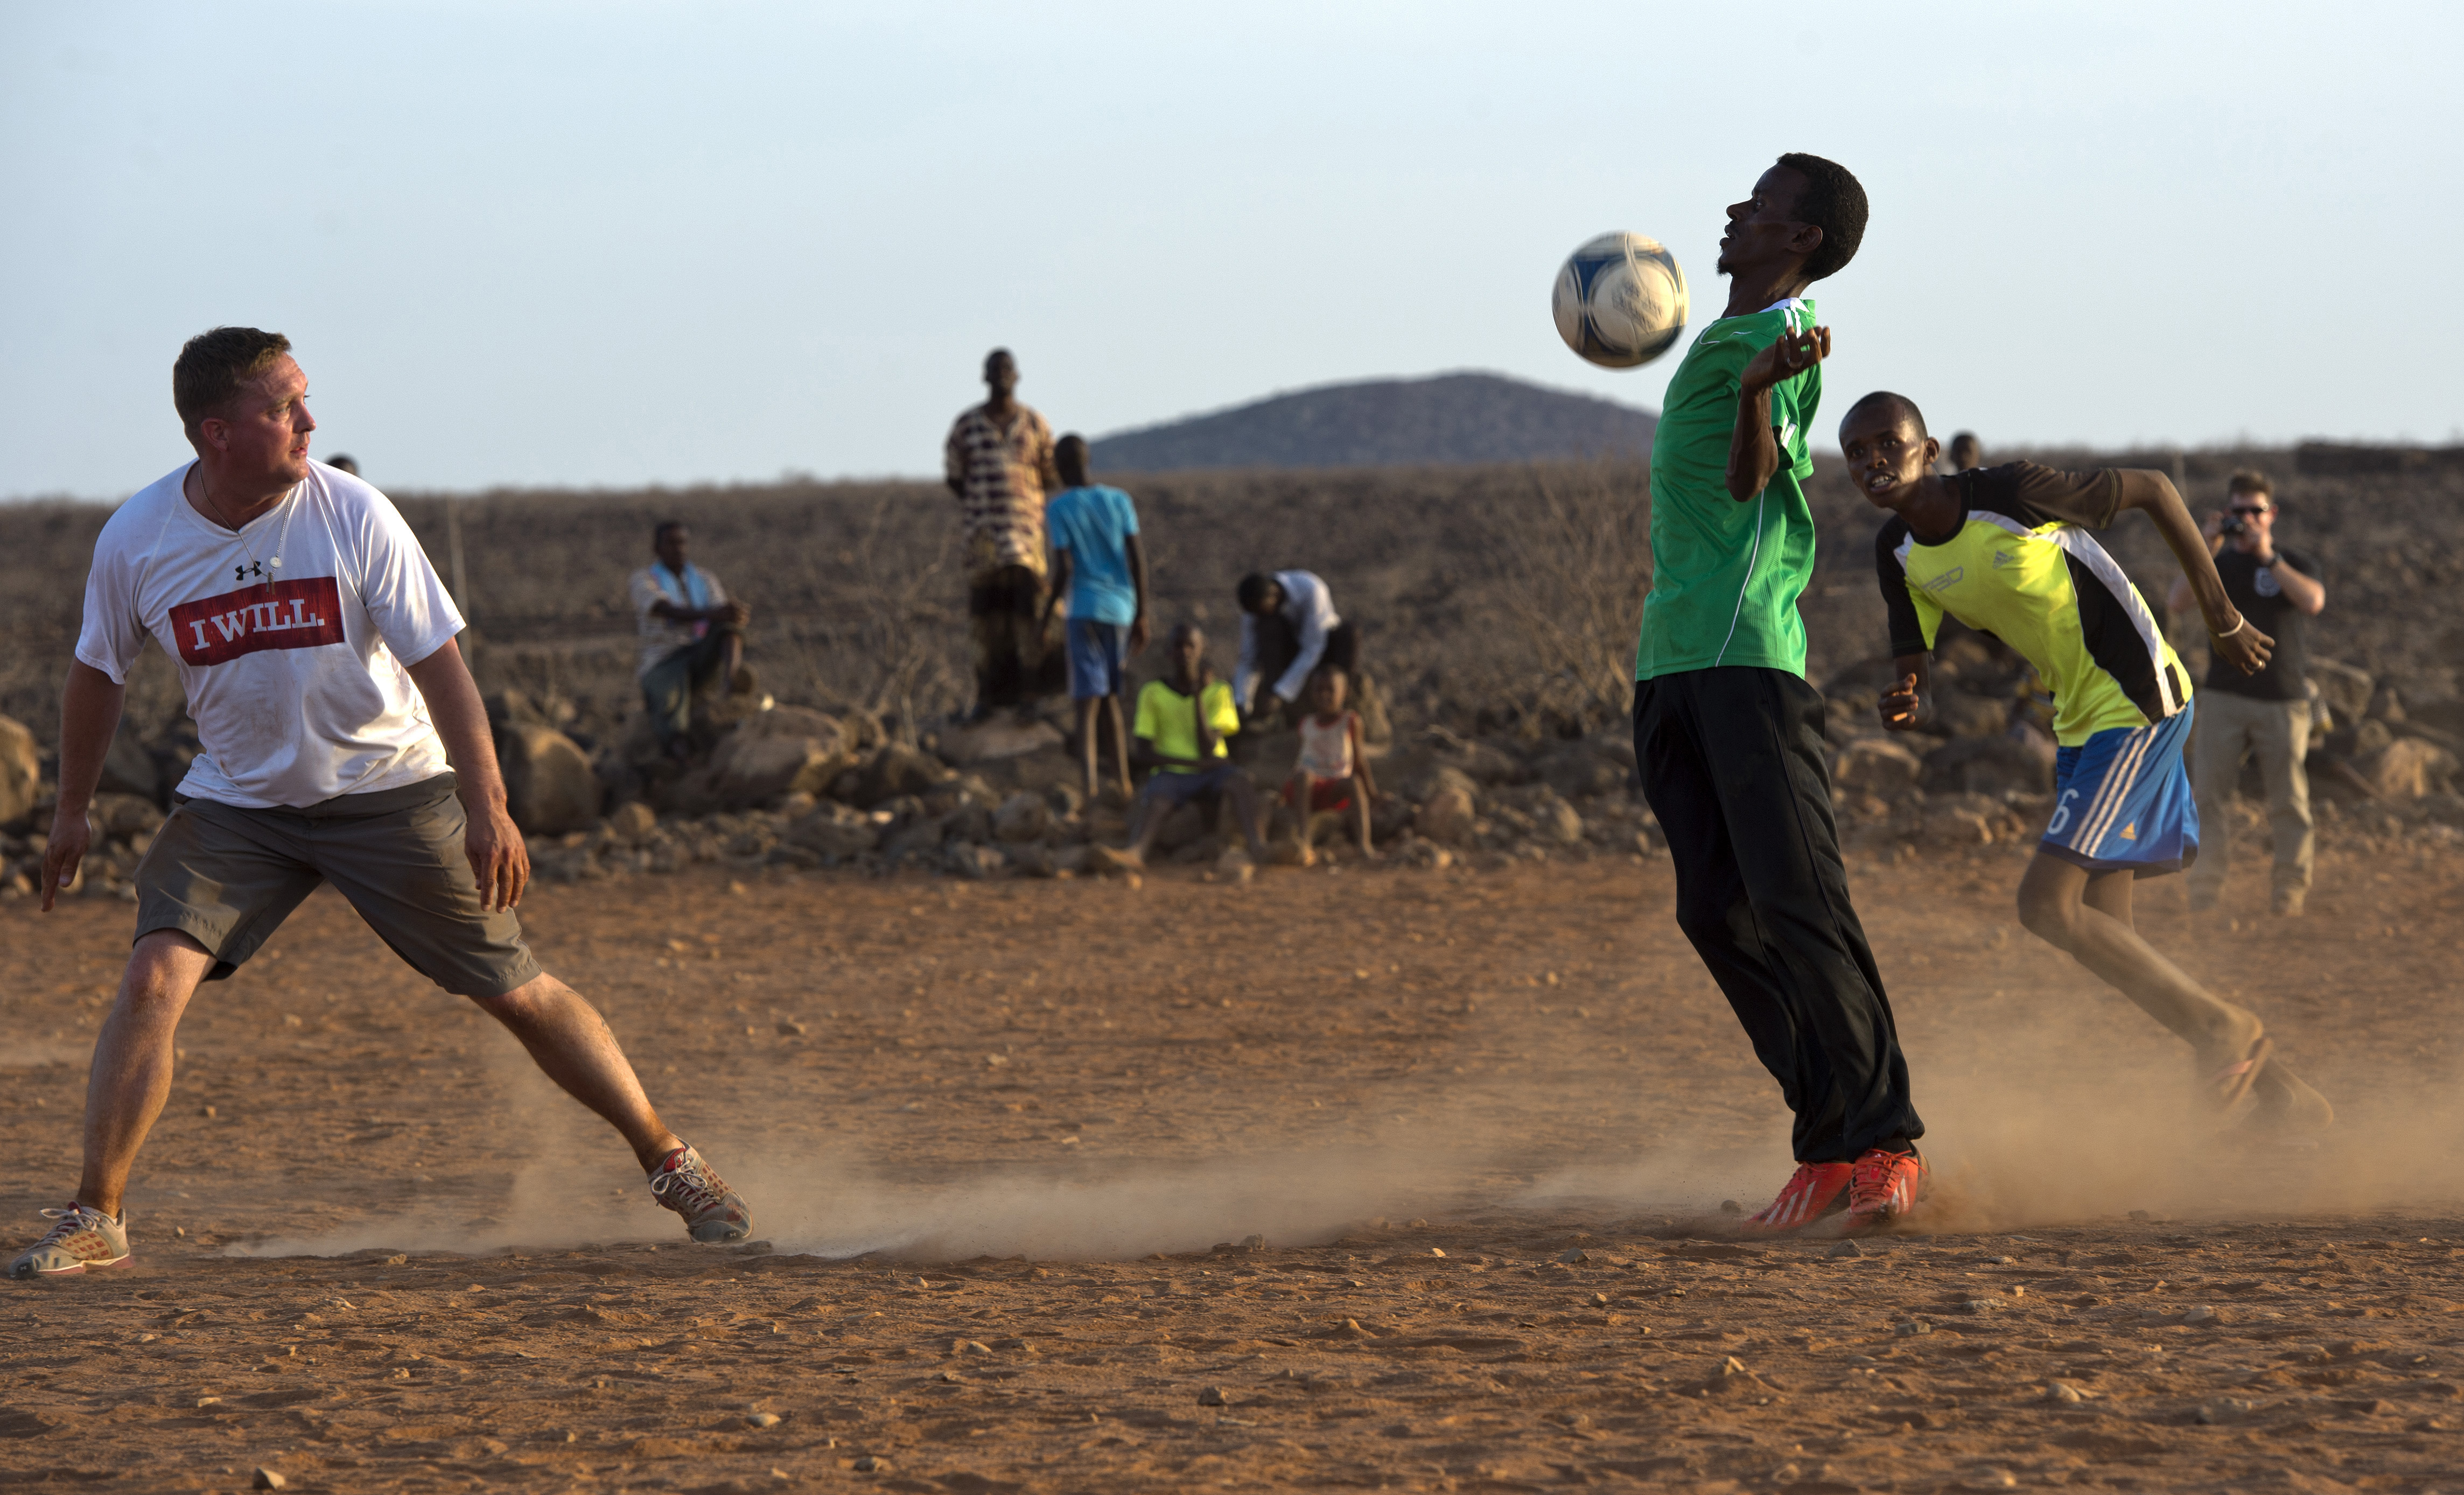 A forward for the Combined Joint Task Force-Horn of Africa soccer team chest blocks a soccer ball during the Chebelley Village Game Night soccer match at Chebelley Village, Djibouti, April 29, 2015.  The U.S. Army's 404th Civil Affairs Battalion hosts the monthly soccer match to build and grow the relationship between Chebelley Village and camp. (U.S. Air Force photo by Staff Sgt. Nathan Maysonet)